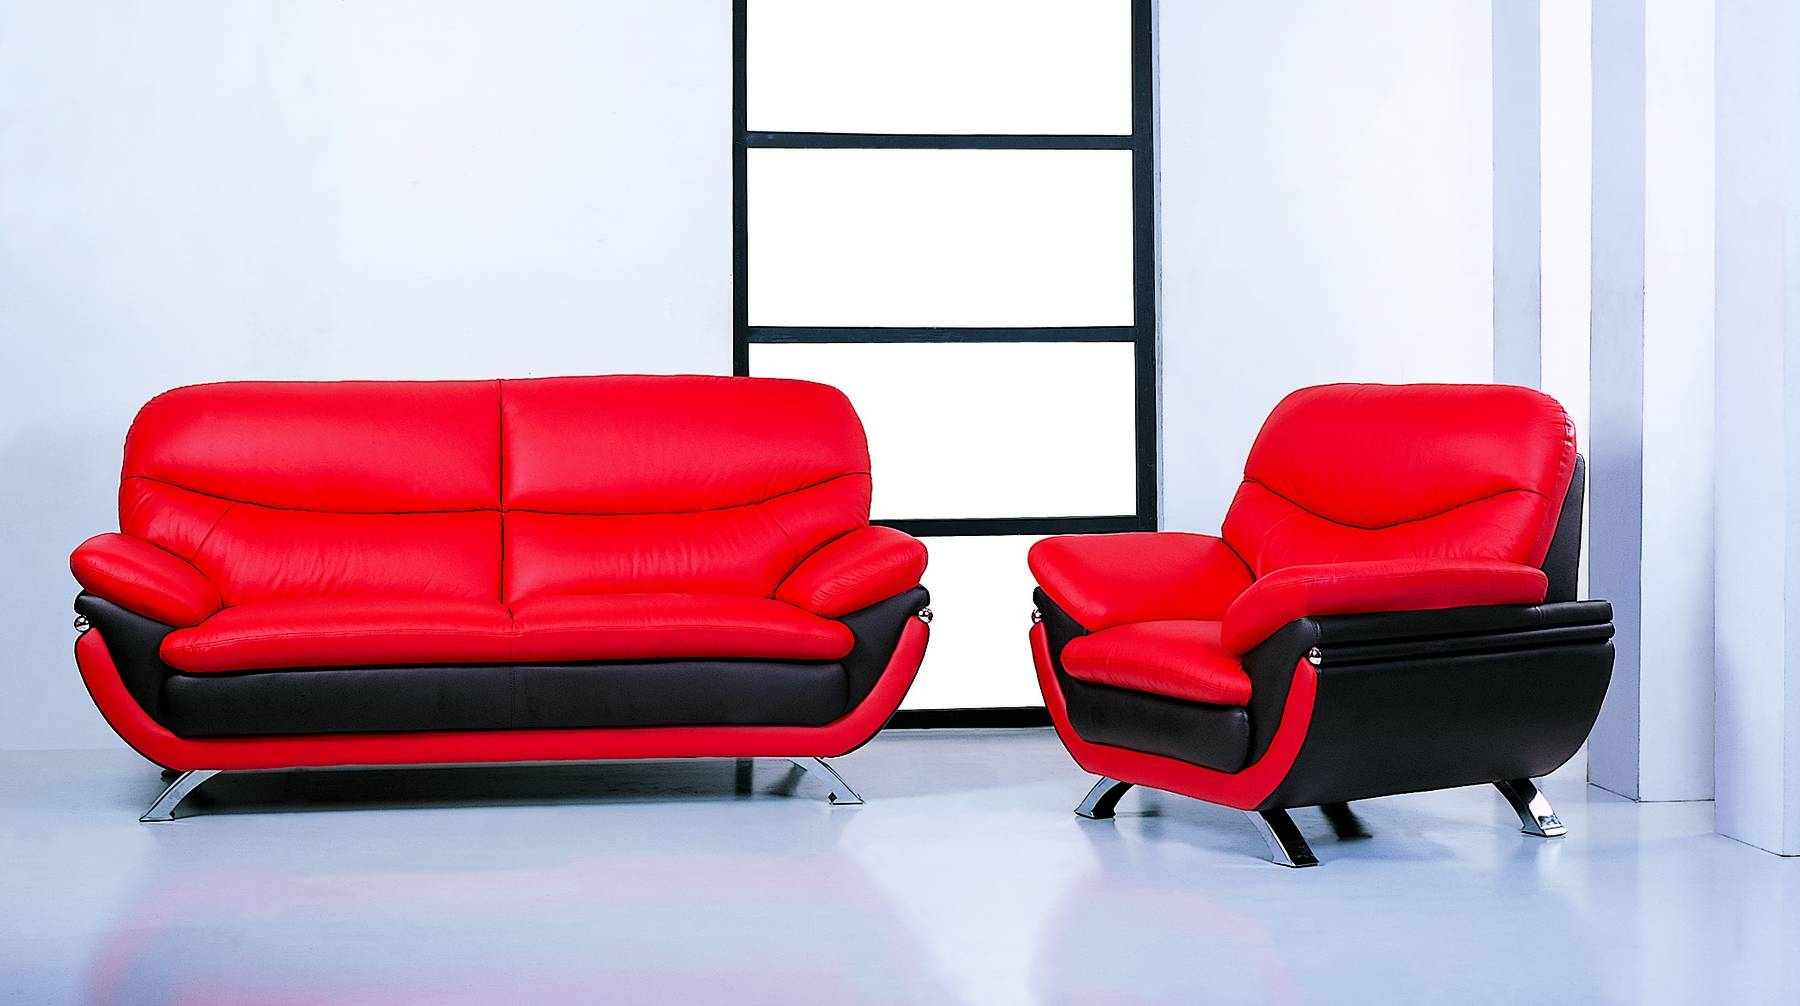 Popular Photo of Sofa Red And Black